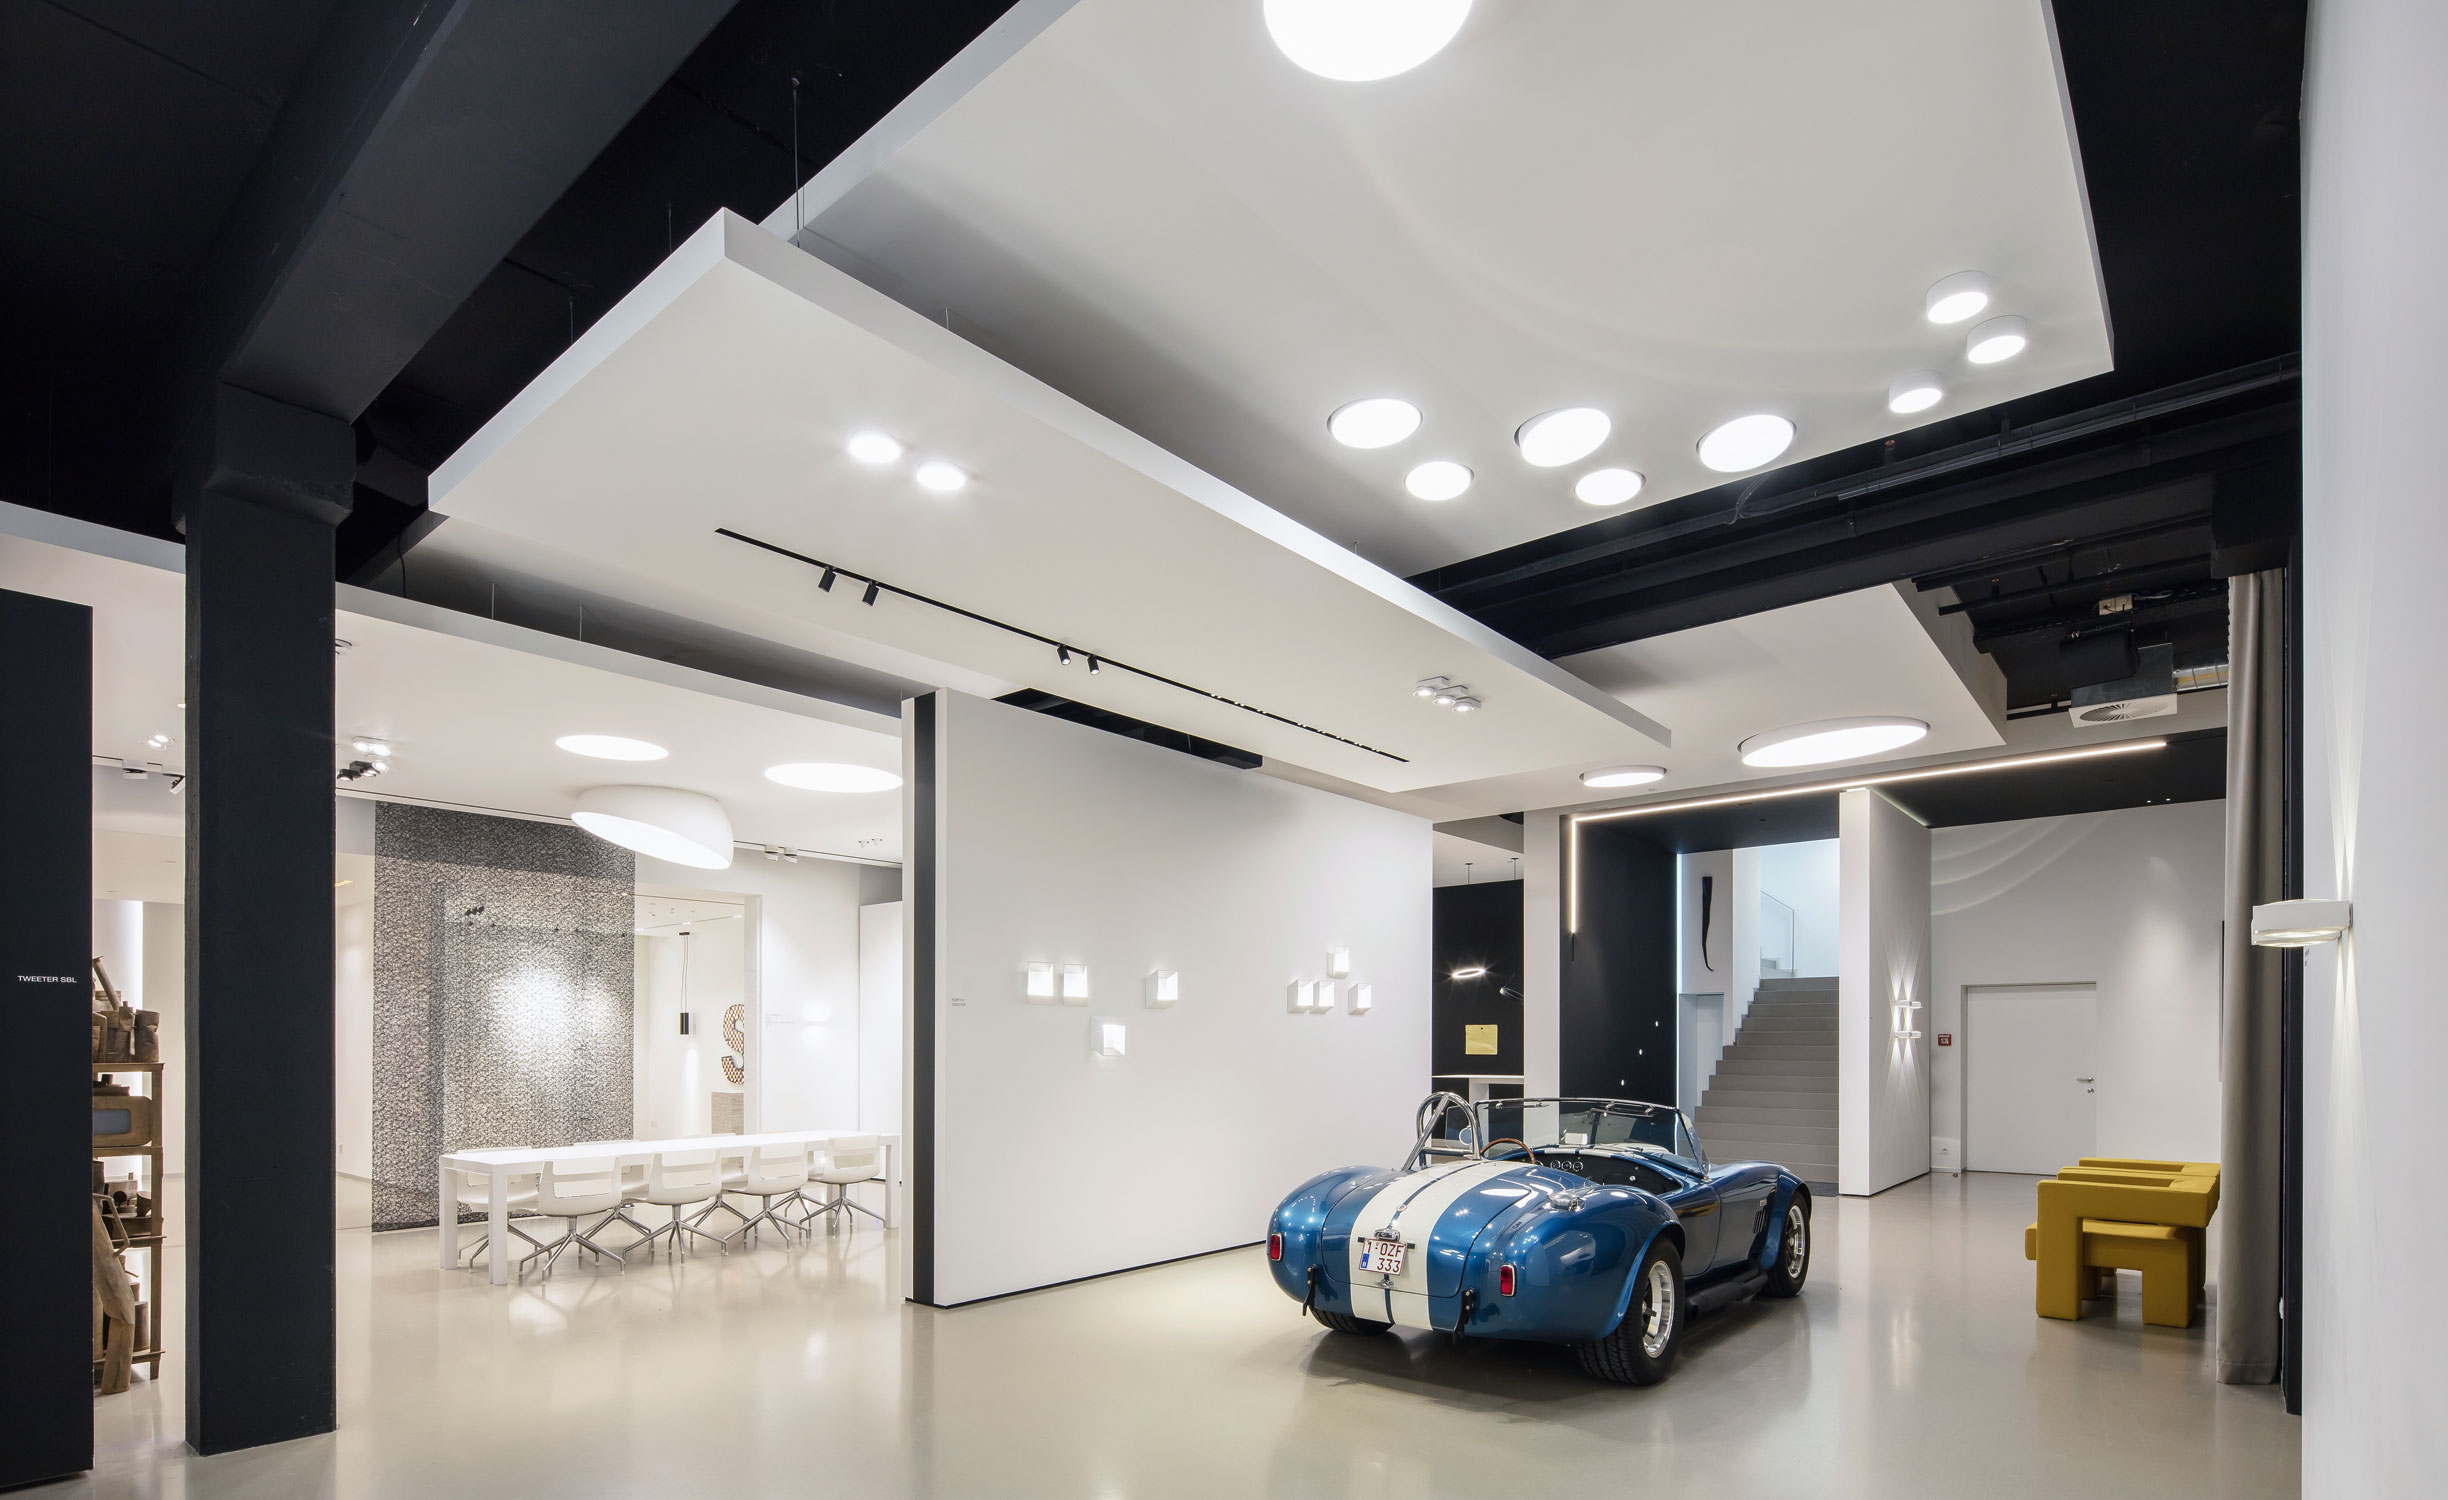 Delta Light Hq Showroom Lb12 Projekt Delta Light